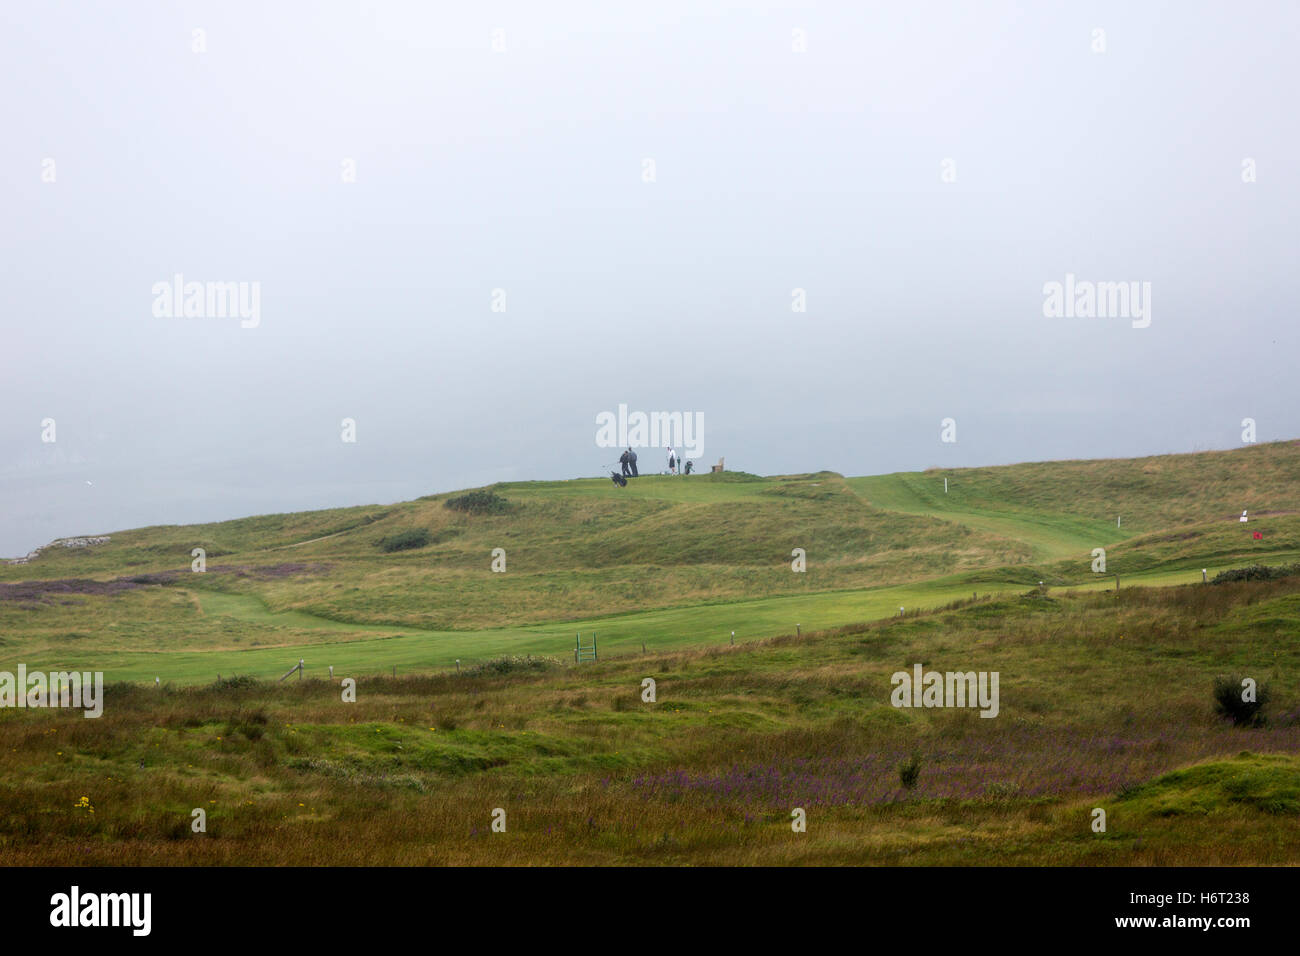 Golf players at St Patrick's Golf Links, Carrigart, Co. Donegal, Ireland. - Stock Image